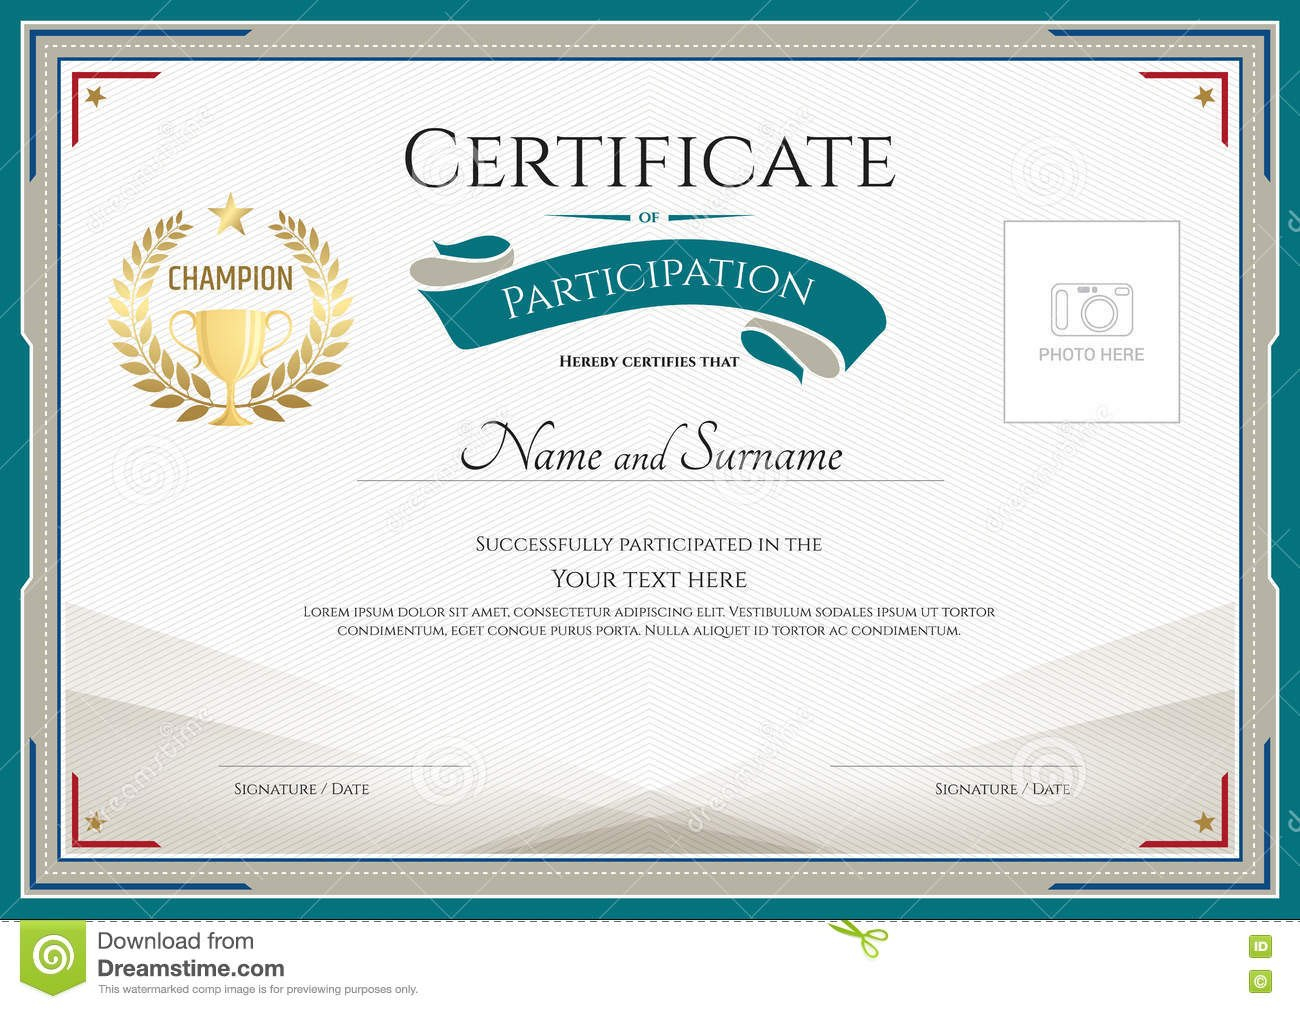 Certificate Of Participation Template With Green Broder Gold Tr With Participation Certificate Templates Free Download